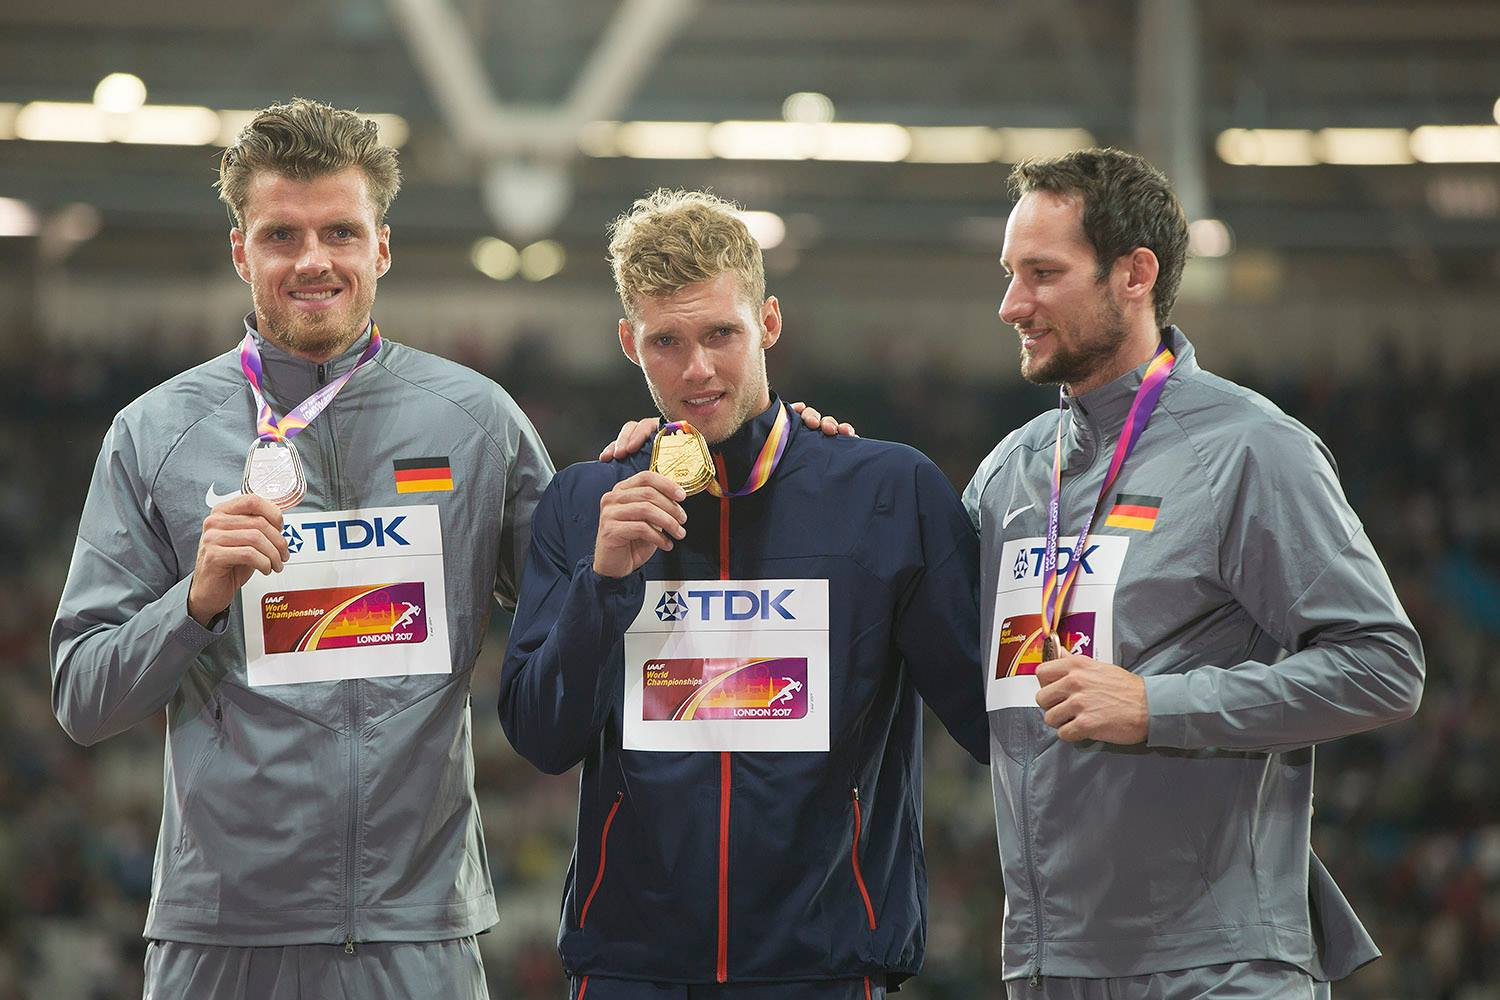 IAAF World Championships London 2017 - Decathlon Podium. Photo by Olavi Kaljunen/trackpic.net